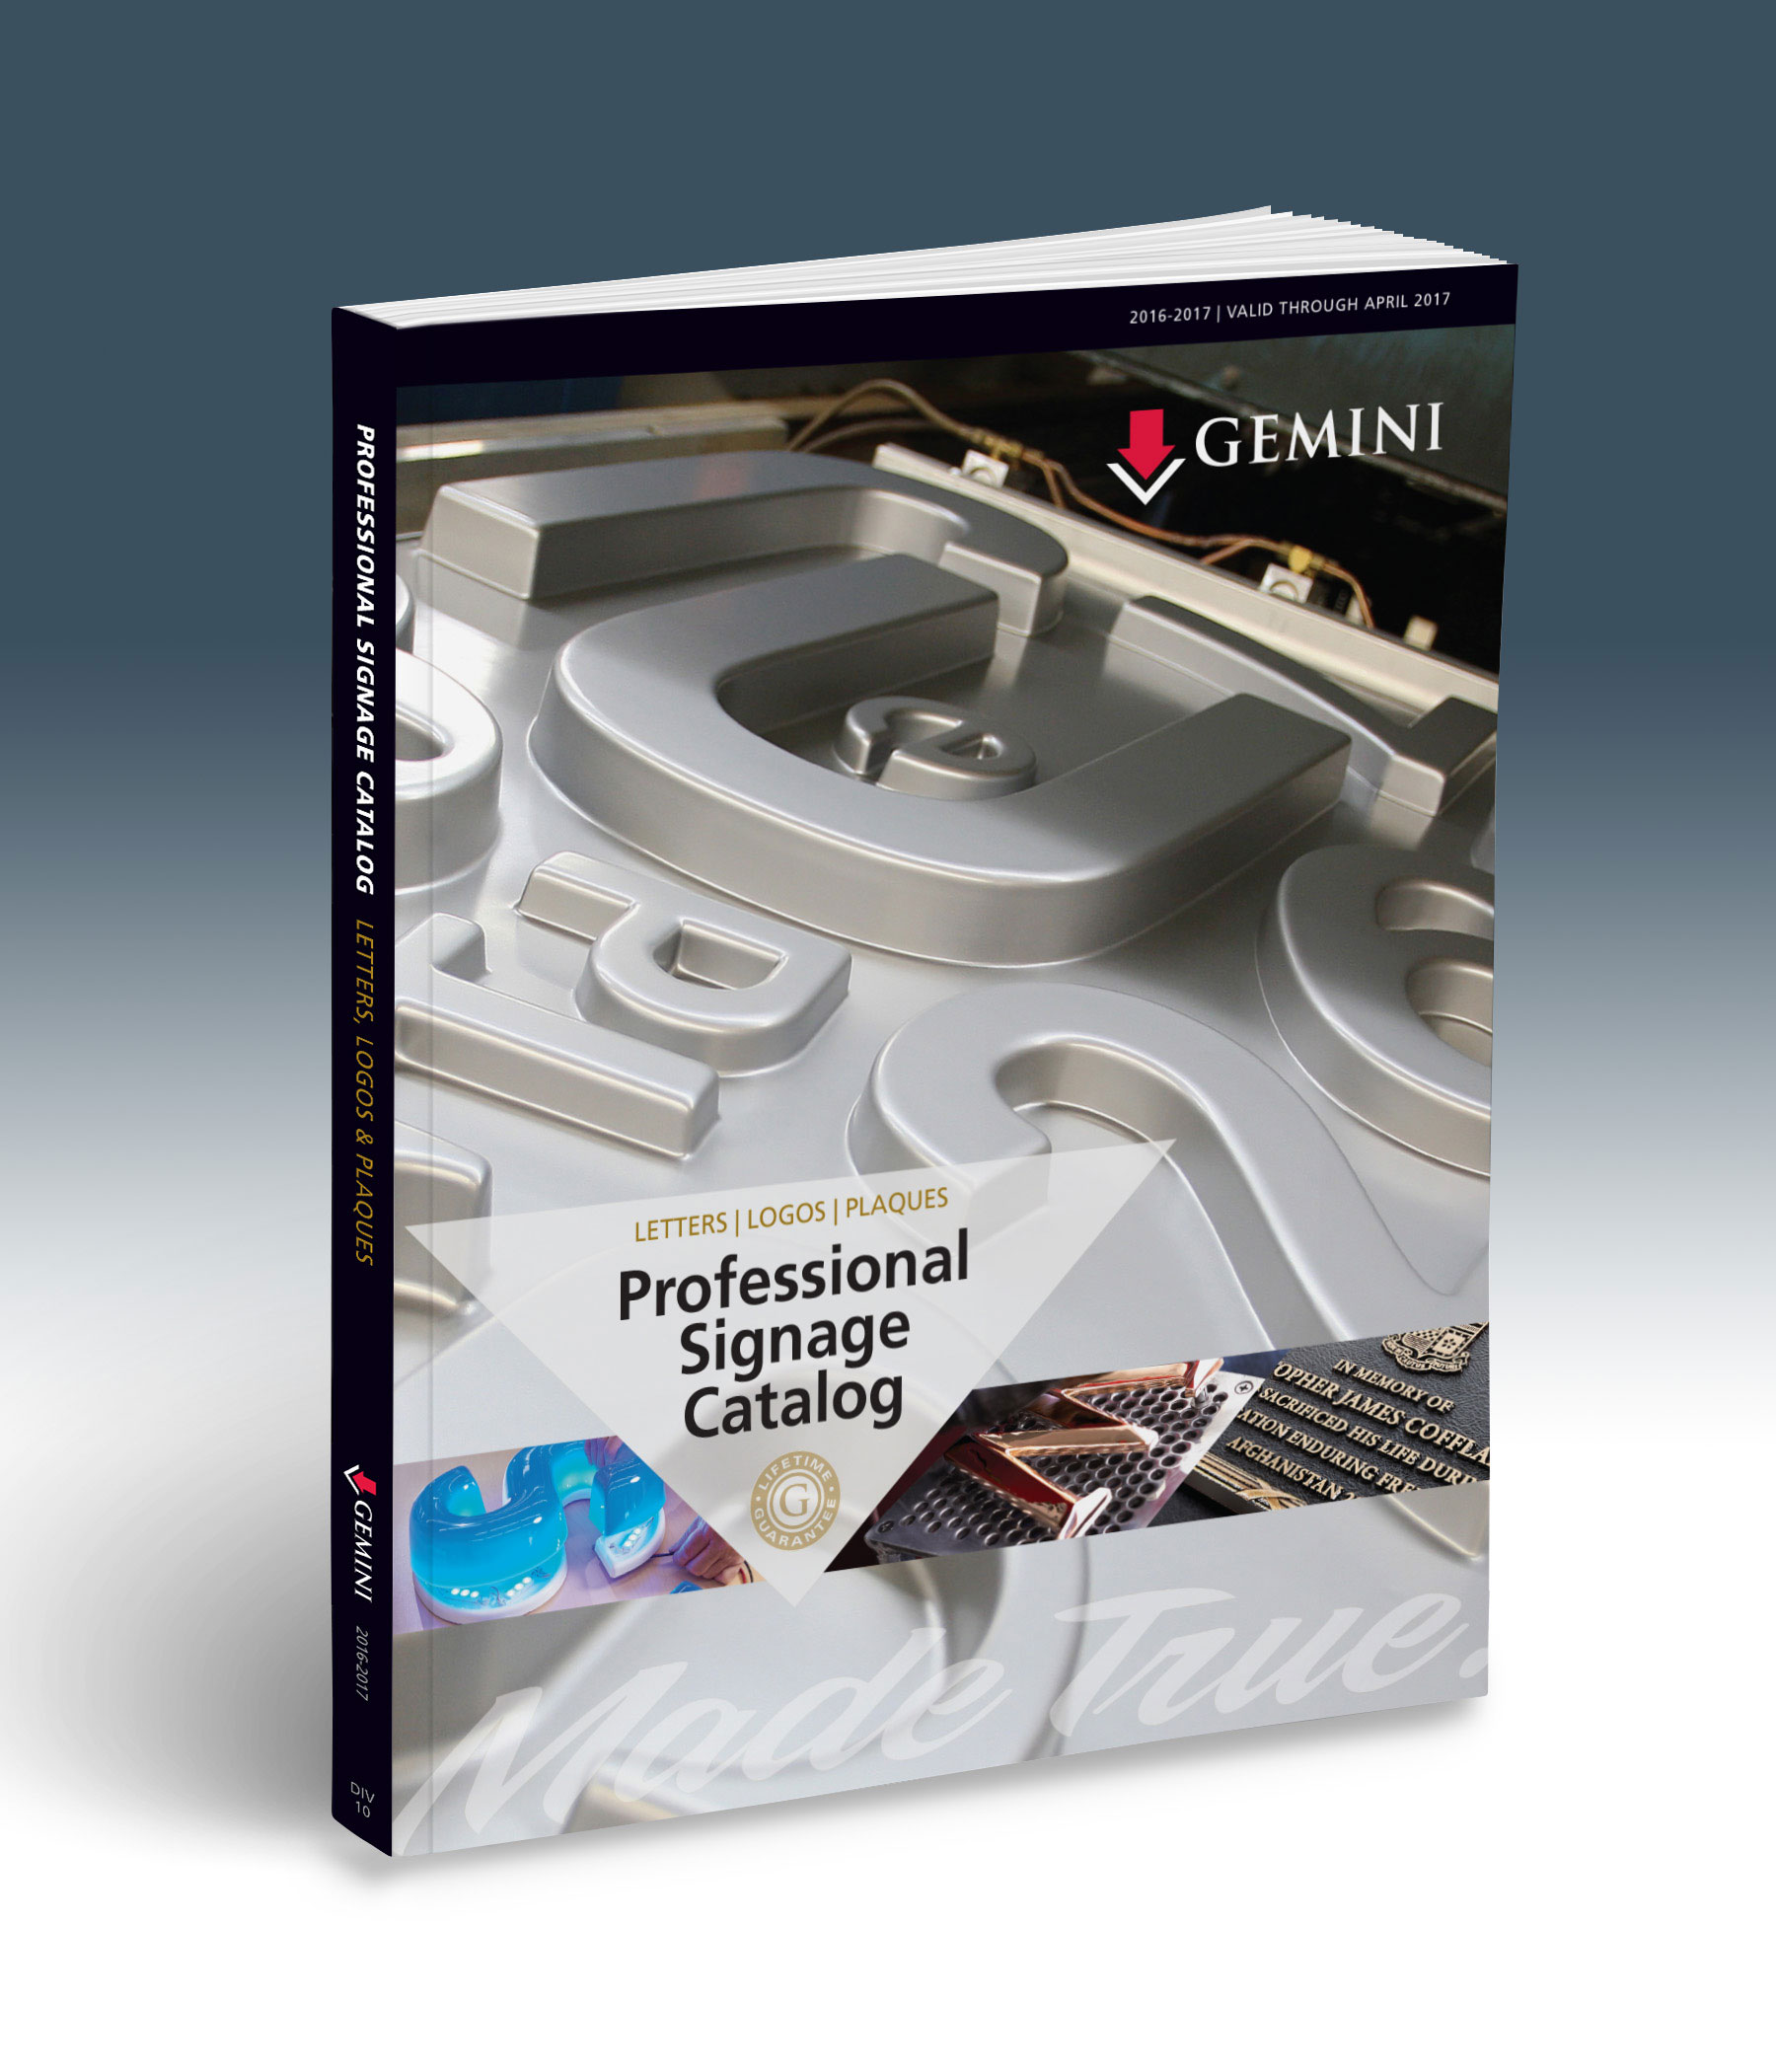 new 2016 2017 professional signage catalog now available from gemini